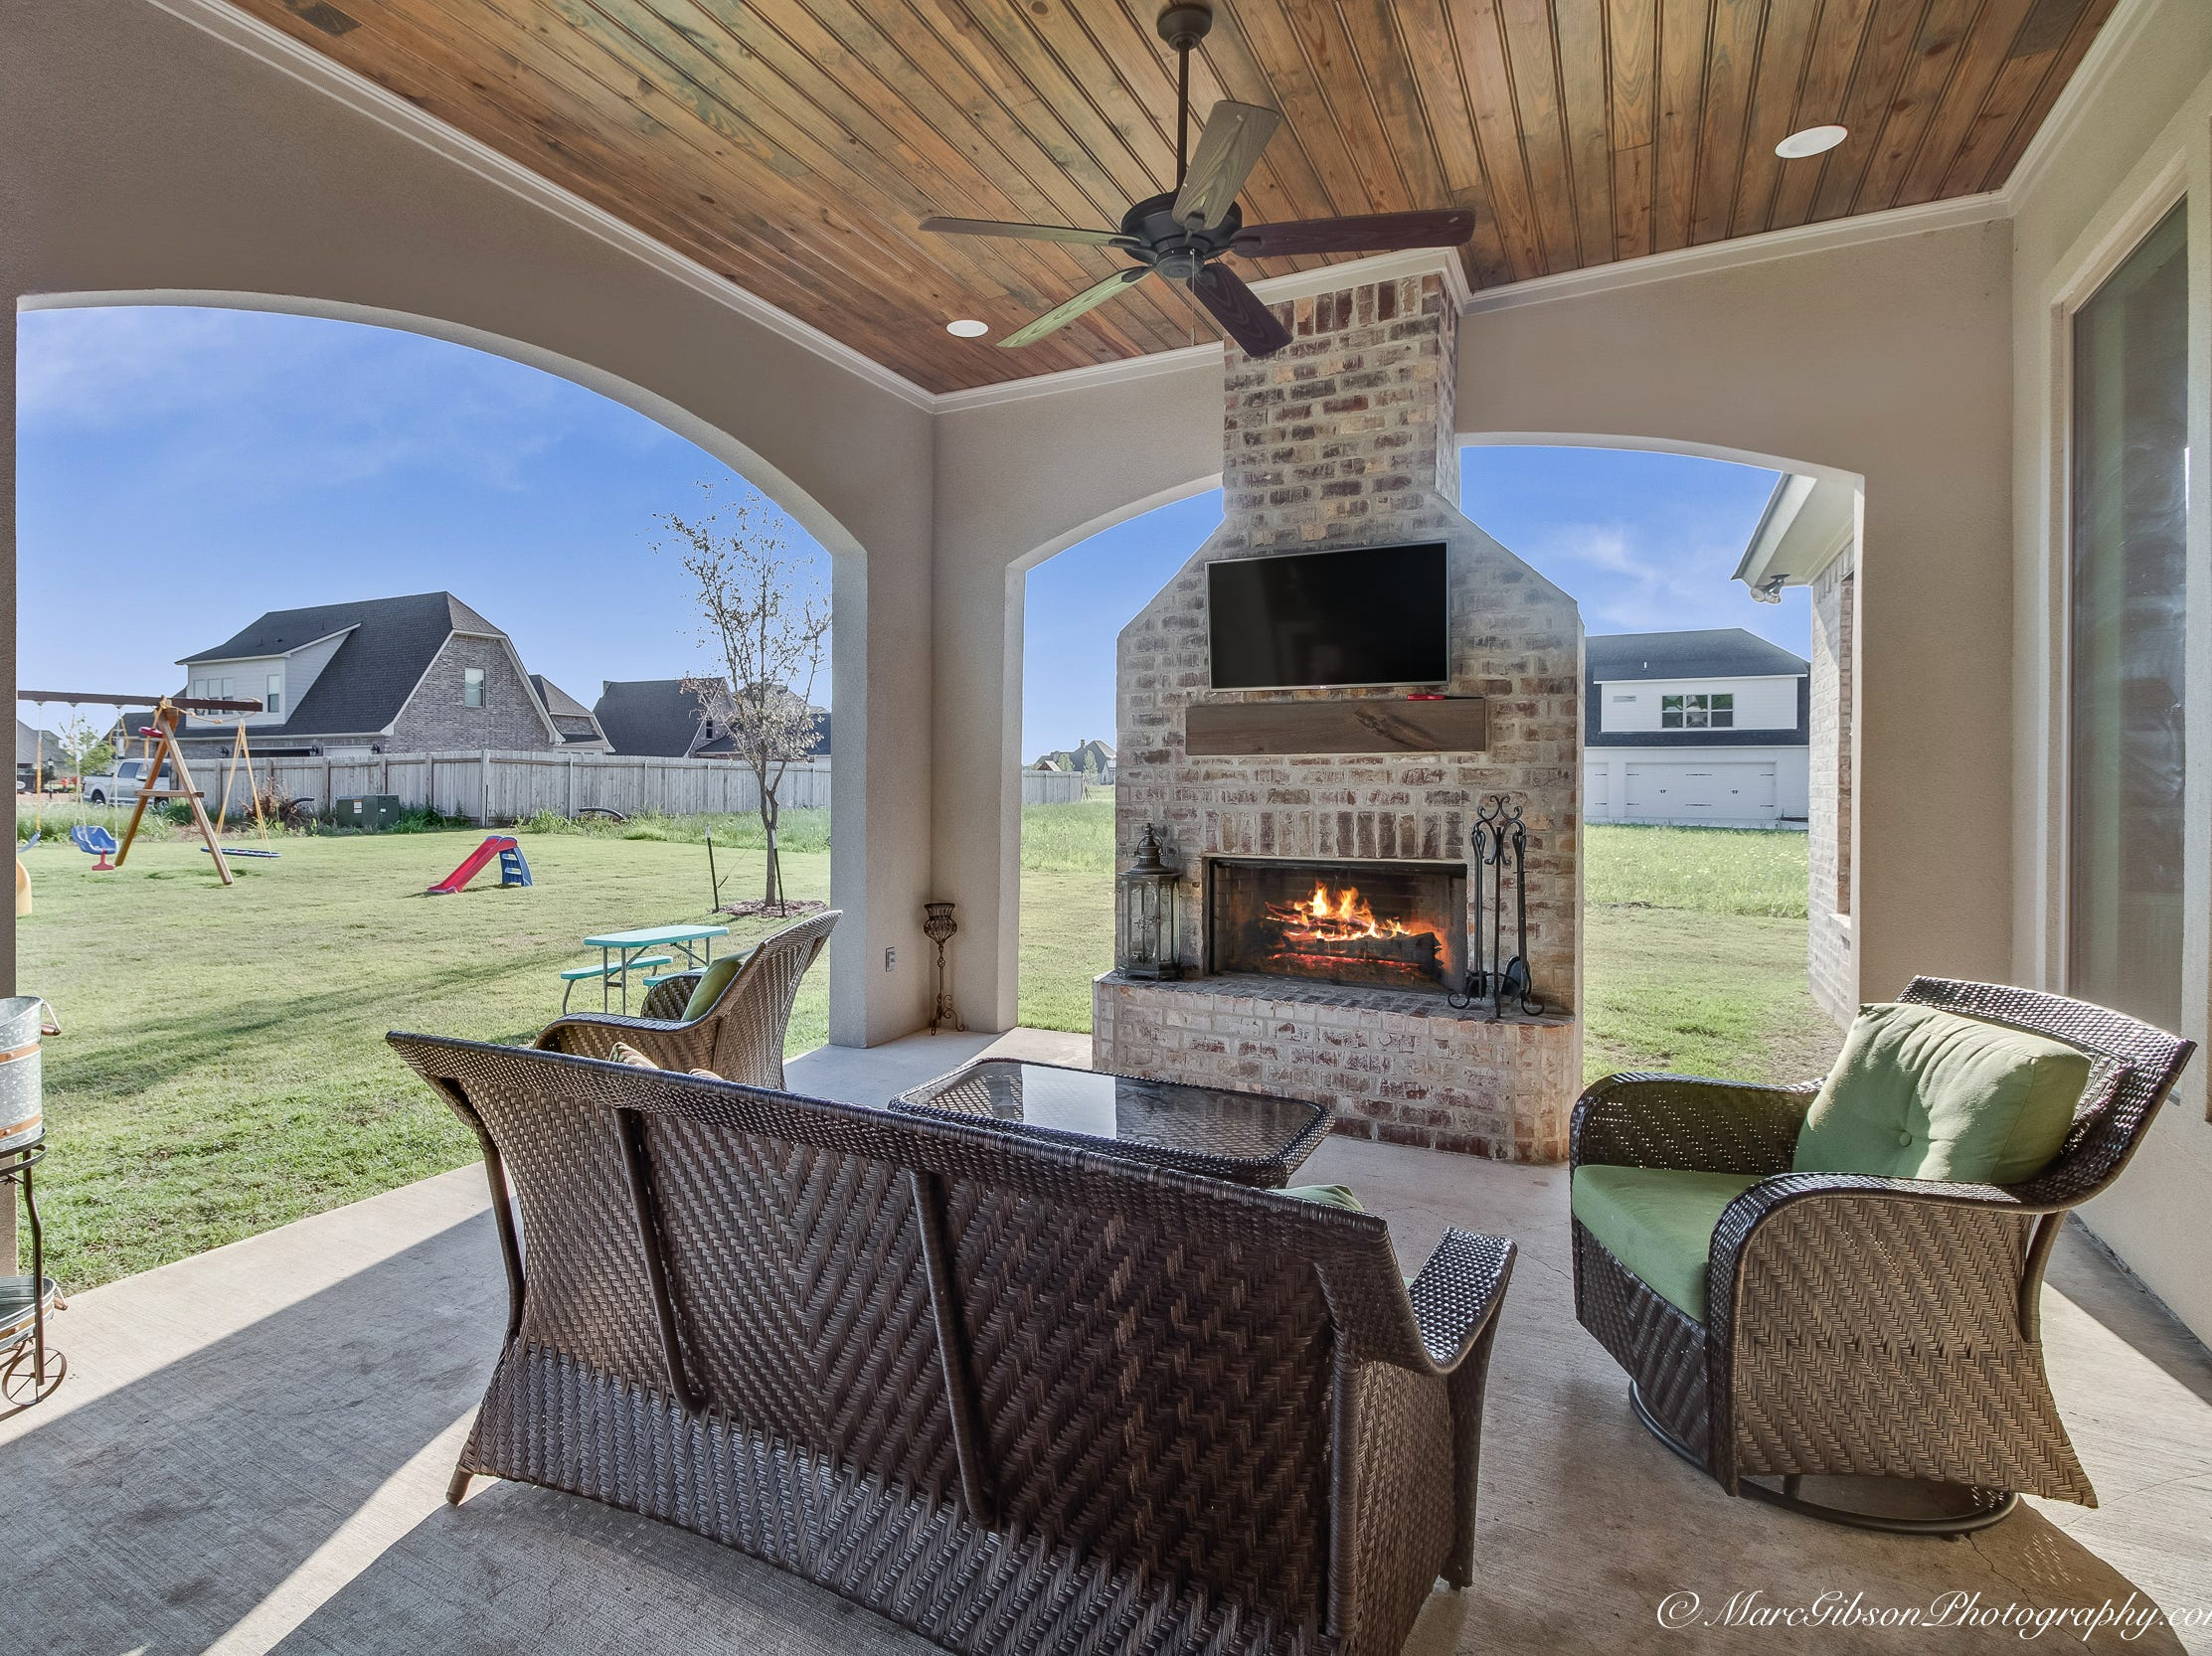 312 Grist Mill Drive,   Benton  Price: $499,900  Details: 4 bedrooms, 4 bathrooms, 3,123 square feet  Special features: Soaring ceilings, all-white kitchen, covered entertaining patio with outdoor kitchen.  Contact: Brittany Shepherd, 218-2450